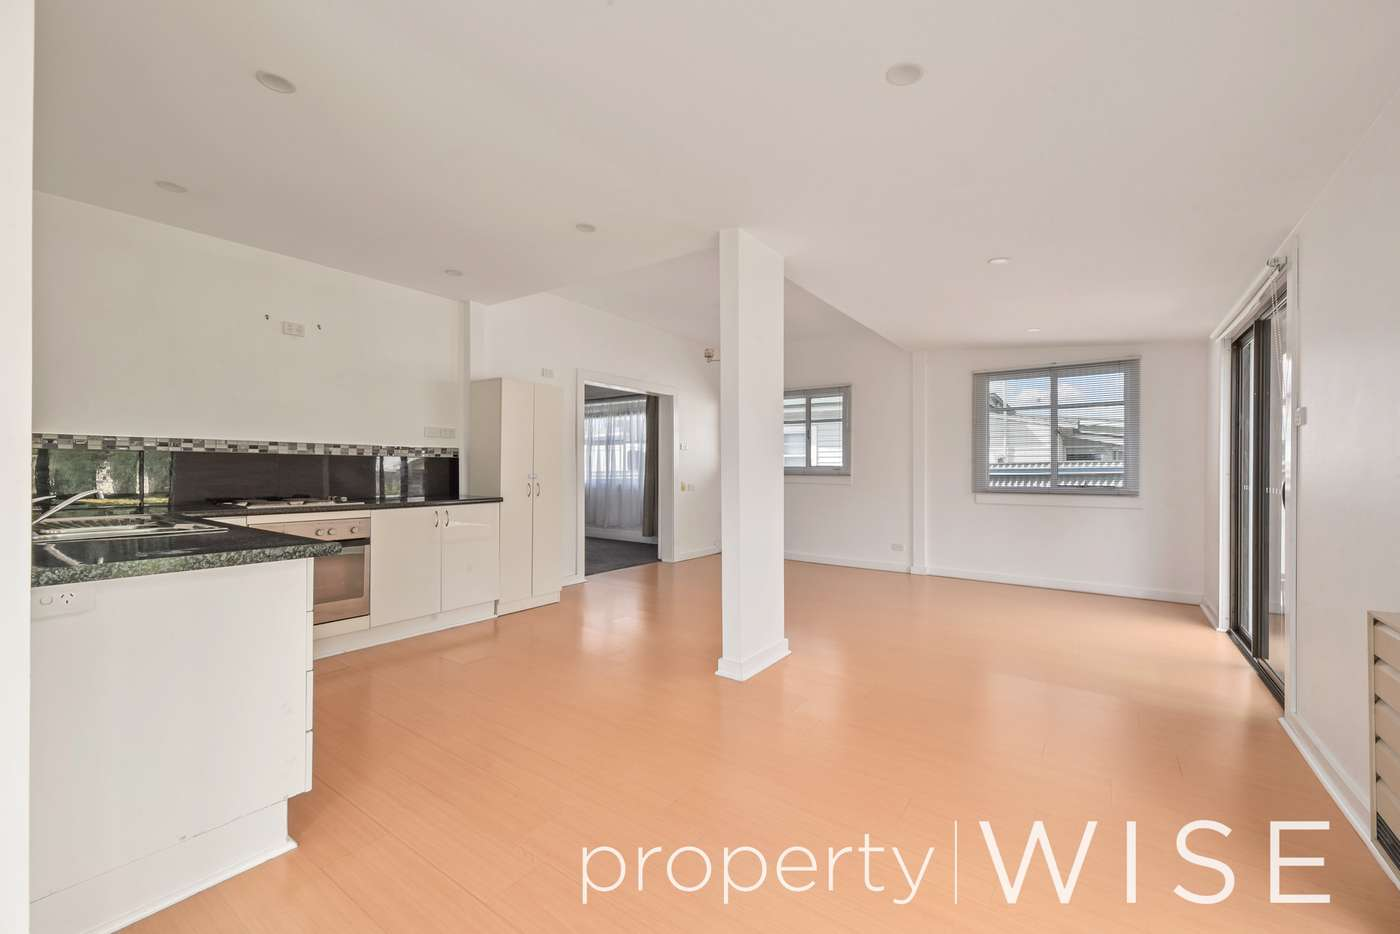 Fifth view of Homely house listing, 11 Lamont Street, Invermay TAS 7248